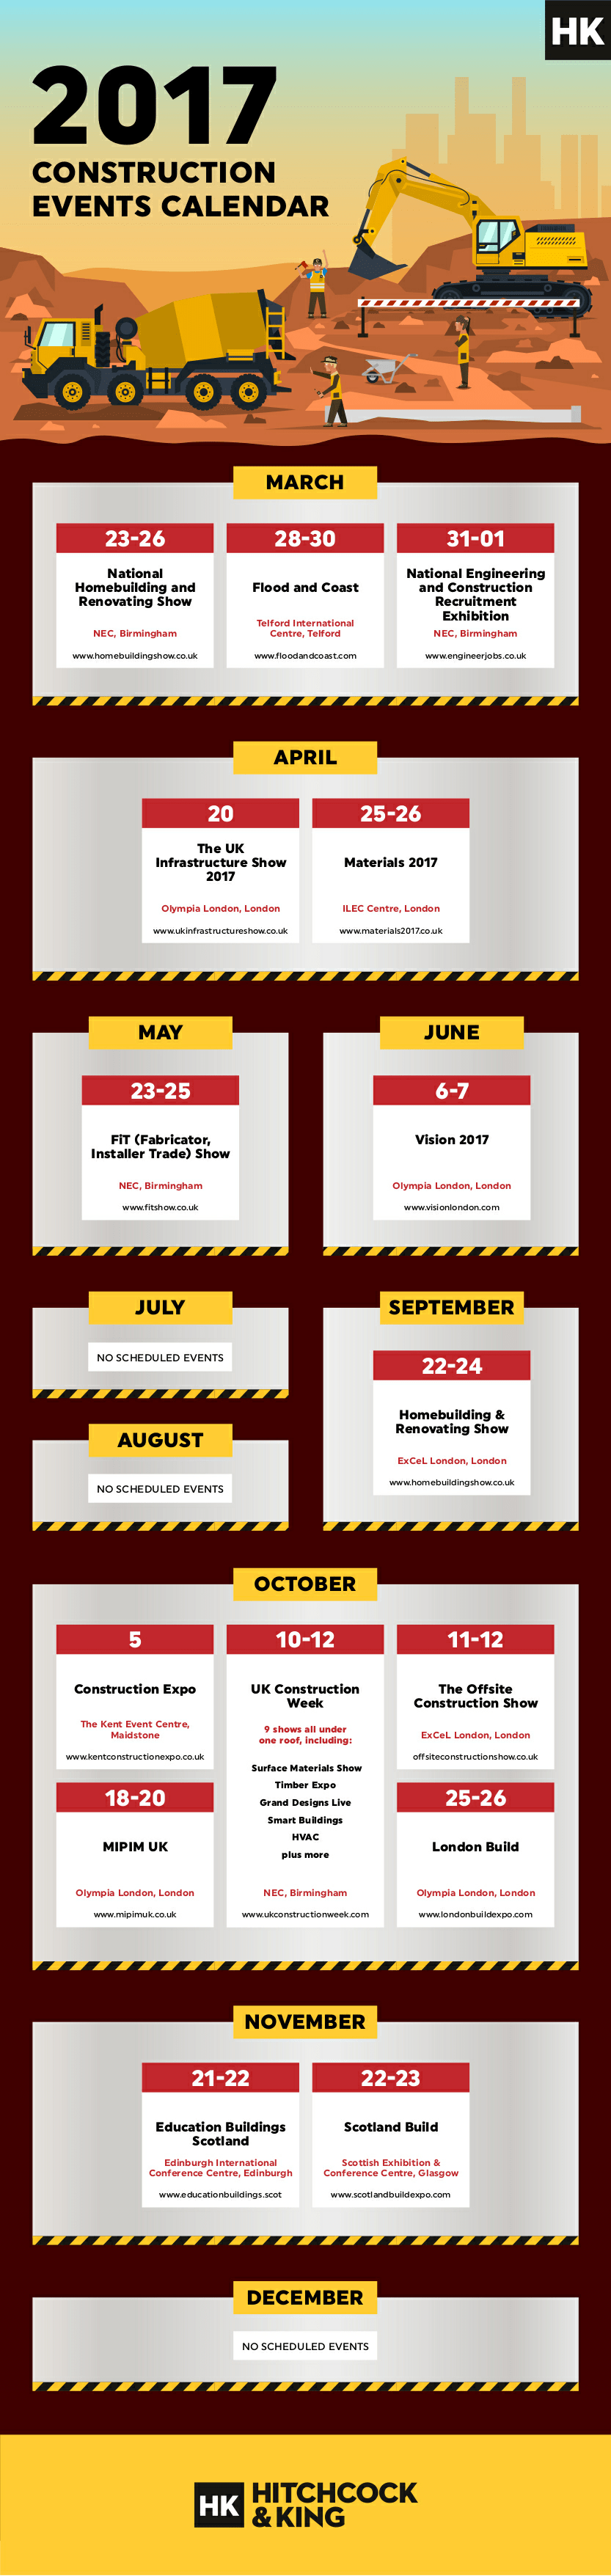 Construction conferences and events calendar 2017